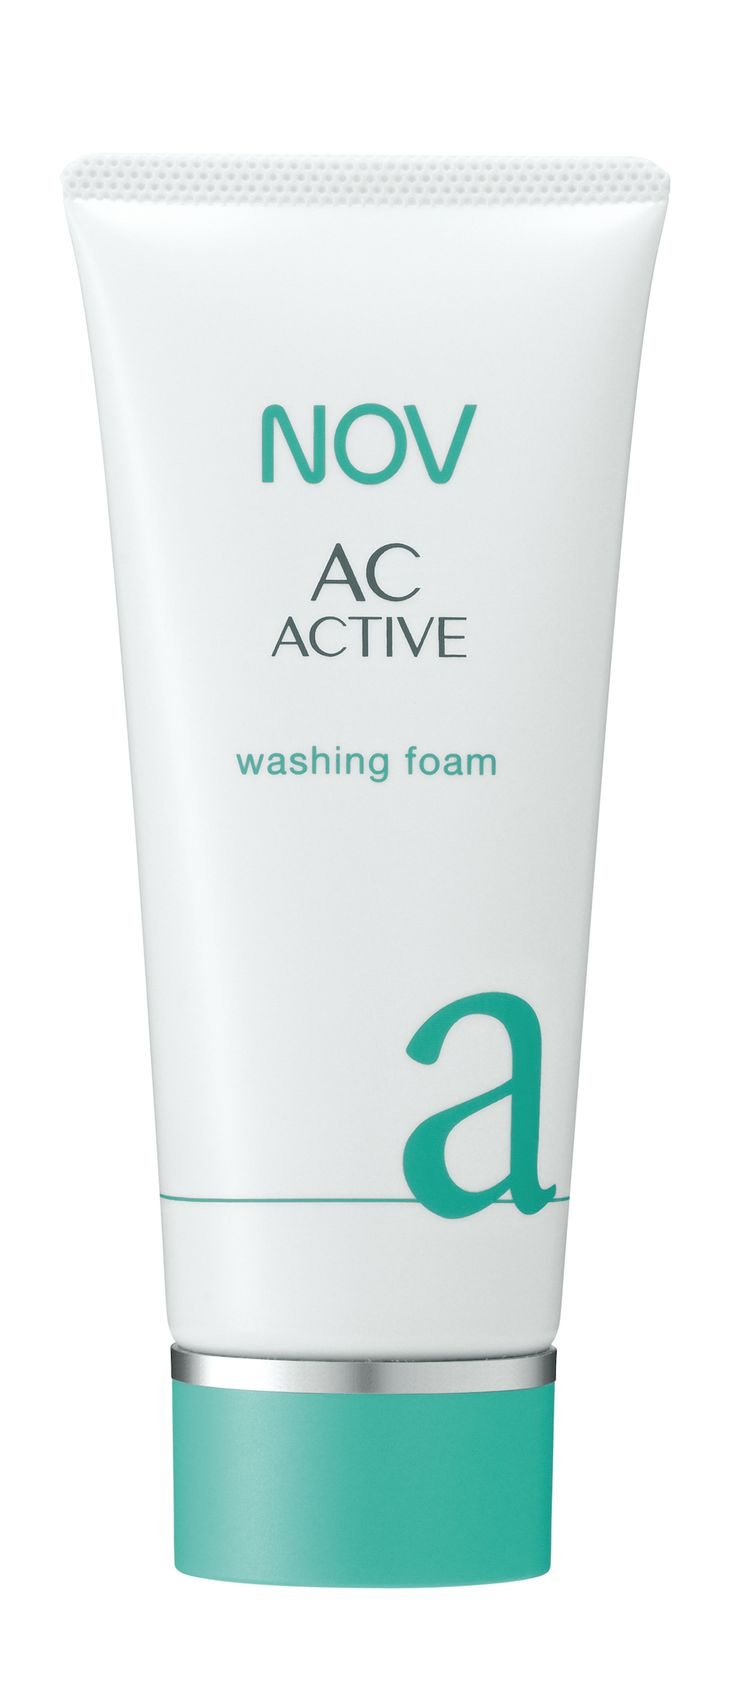 NOV AC Active washing foam: This is a facial cleanser that removes old keratin and sebum while retaining moisture. This is a AHA(glycolic acid: wetting agent) combination. This is an active ingredient BHA (salicylic acid) combination. This is a vitamin C and E derivative (dl-a-tocopherol,2-L-ascorbic acid and phosphoric acid diester potassium salt: wetting agent) combination.